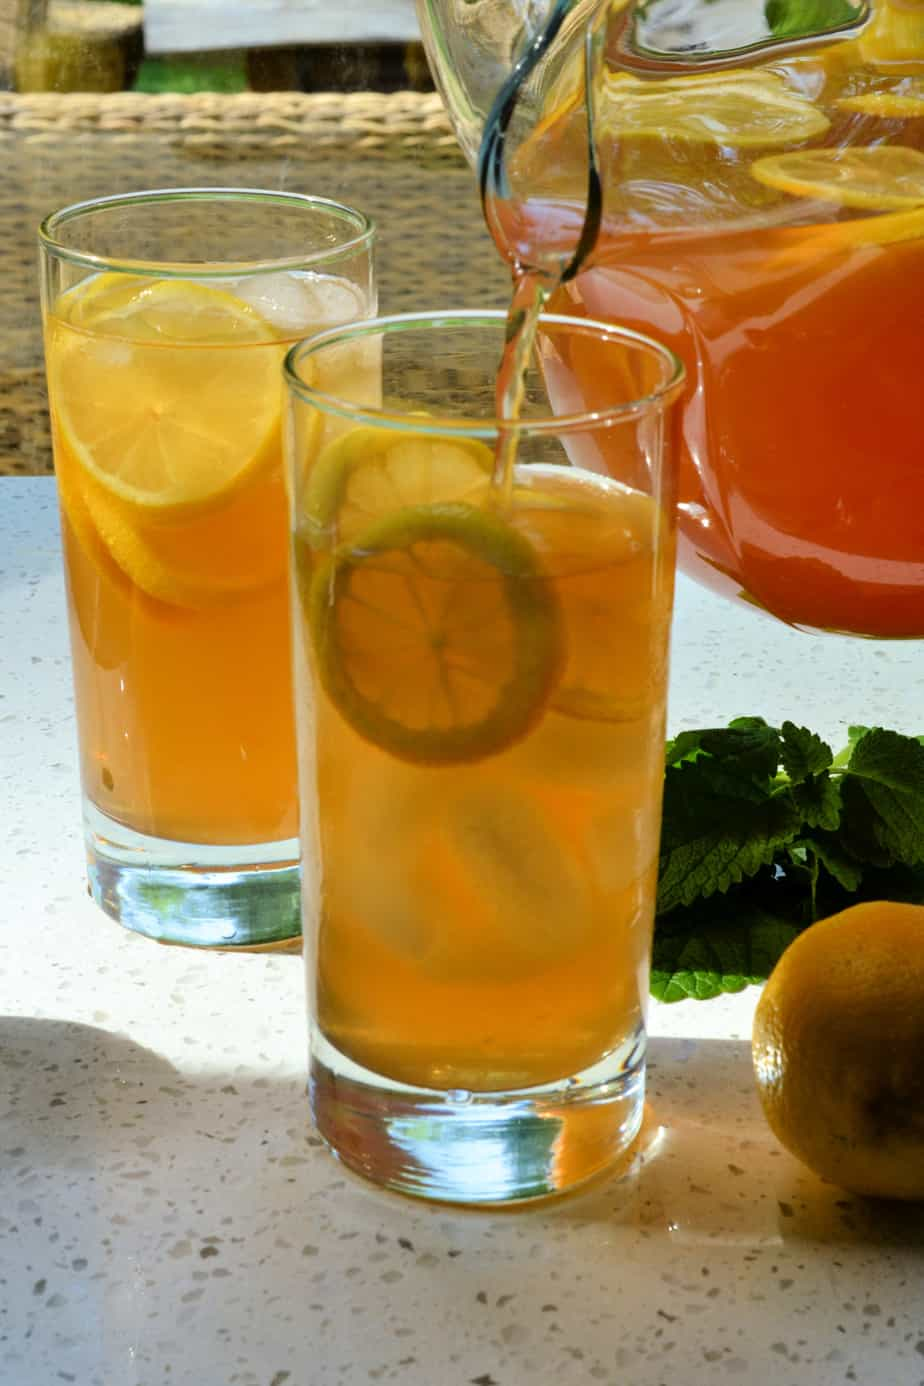 A pitcher of tea mixed with lemonade.